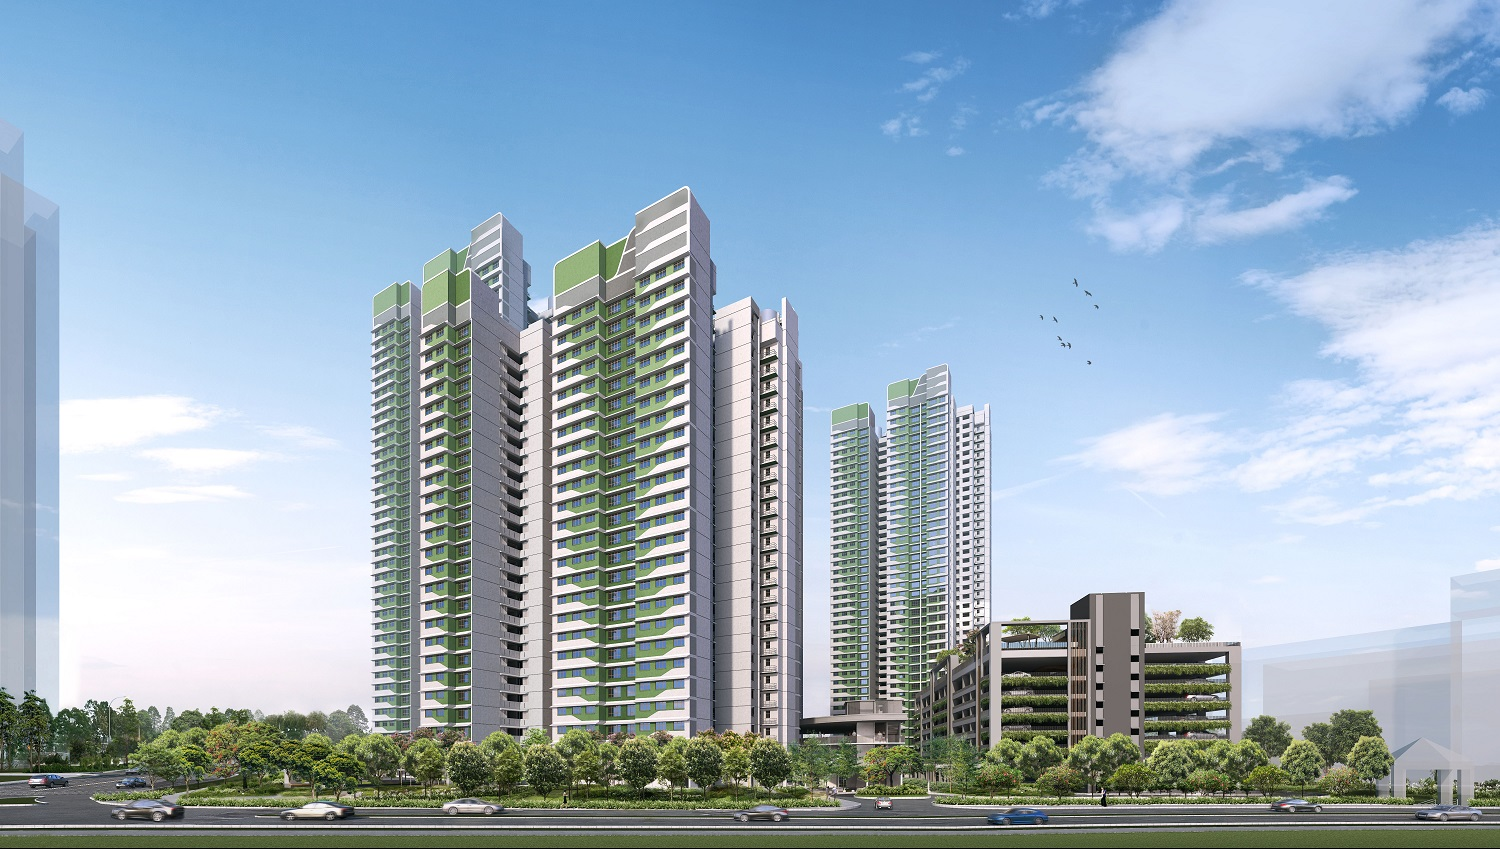 Toa Payoh Ridge will be located at the junction of Lorong 1 Toa Payoh and Toa Payoh Rise. The development comprises 4 residential blocks with staggered heights of 25 to 40 storeys. (Picture: HDB)